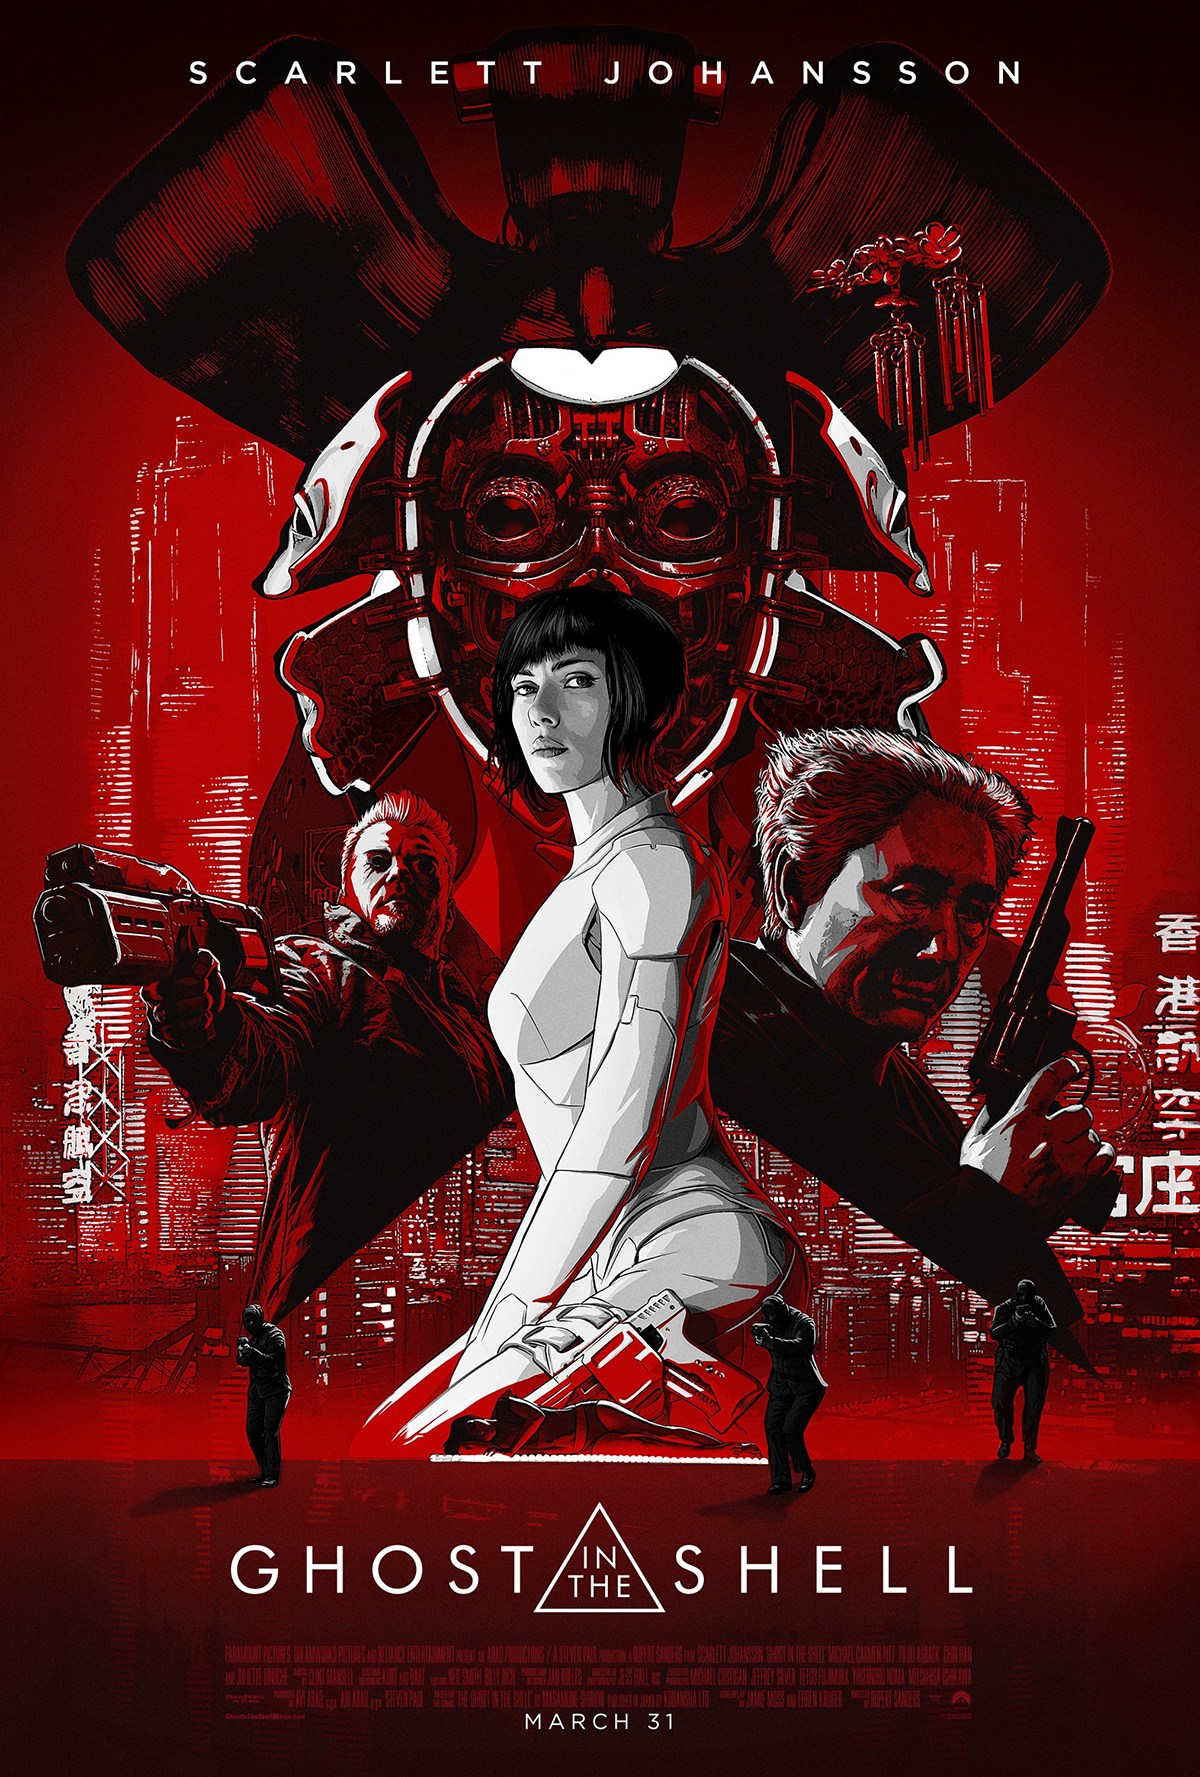 Ghost-in the Shell - 2017 - poster - red-black manga